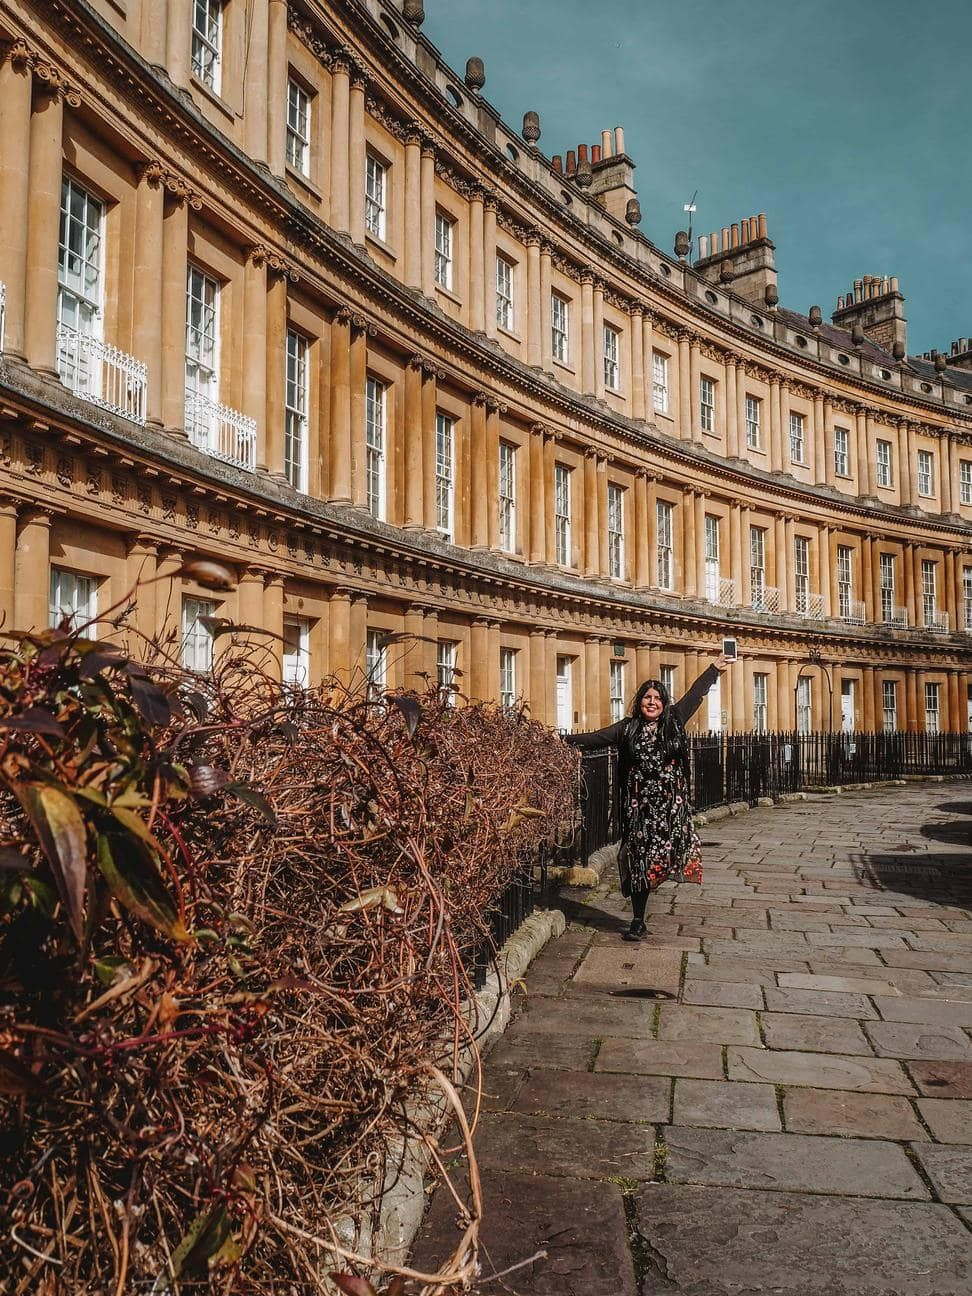 Jane Austen In Bath 17 Unmissable Places For Austen Fans Solo Female Travel Female Travel Blog Female Travel